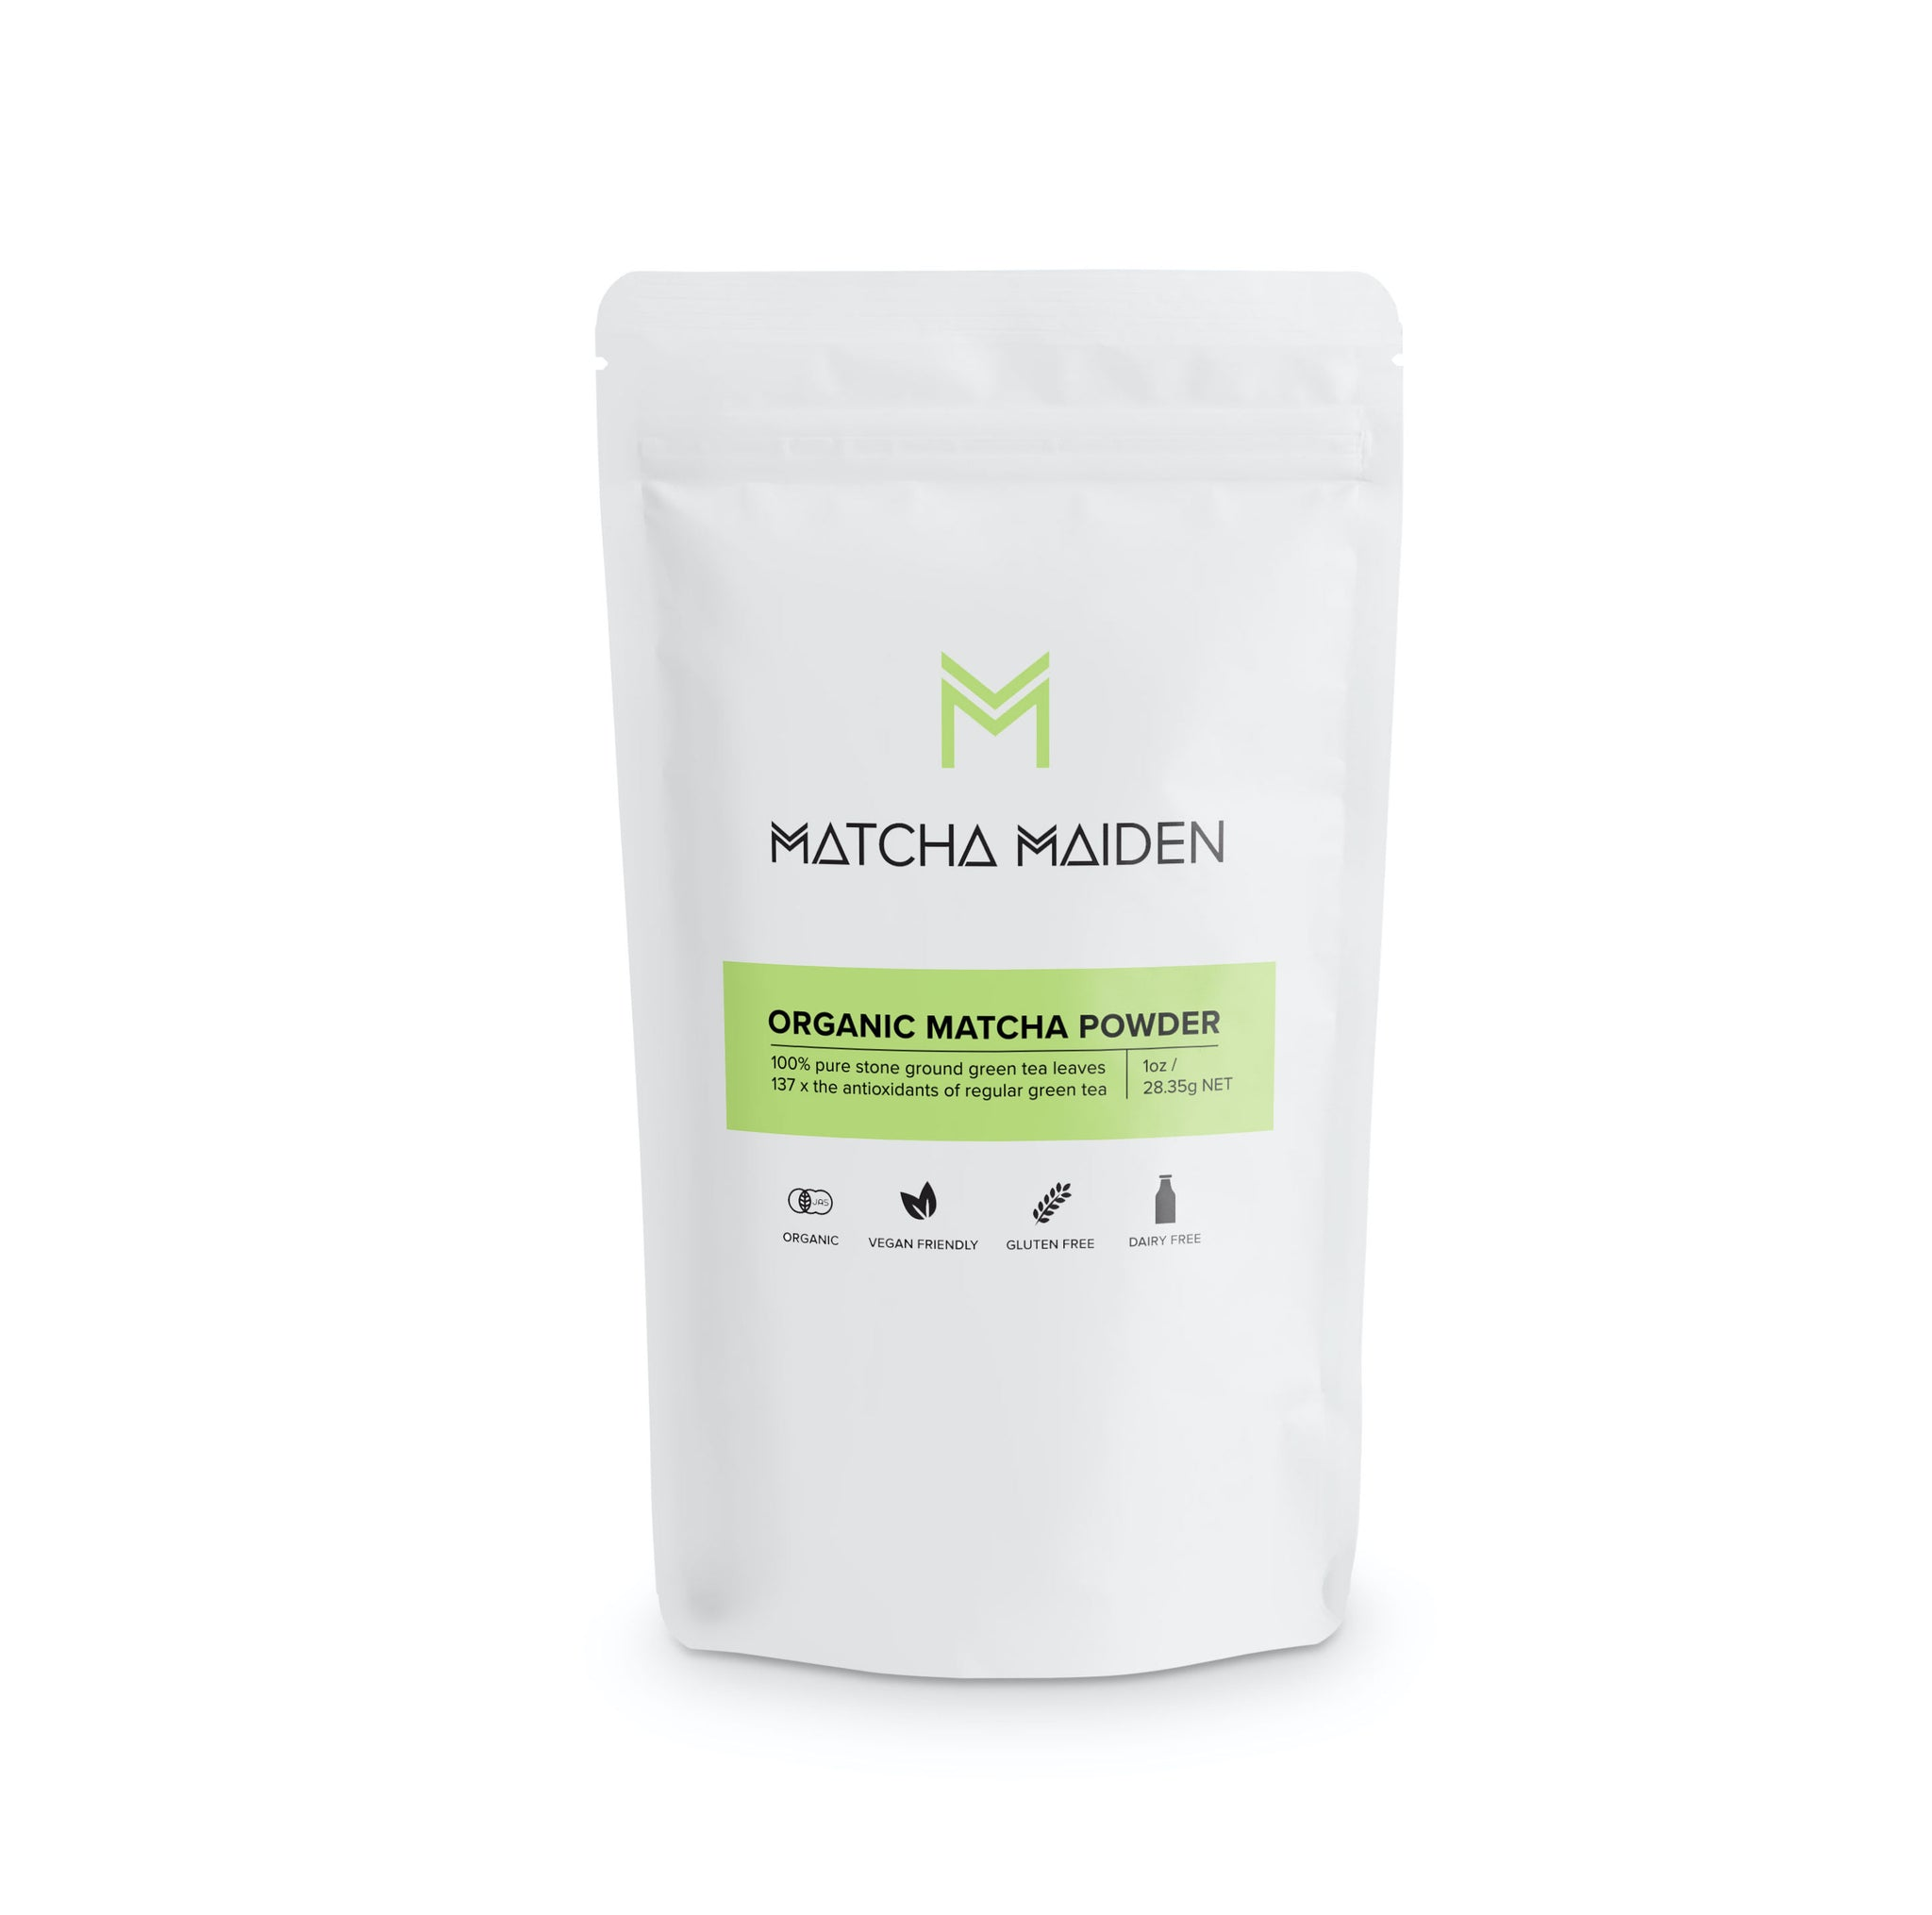 ORGANIC MATCHA GREEN TEA POWDER - 28.35g (Coming Soon)